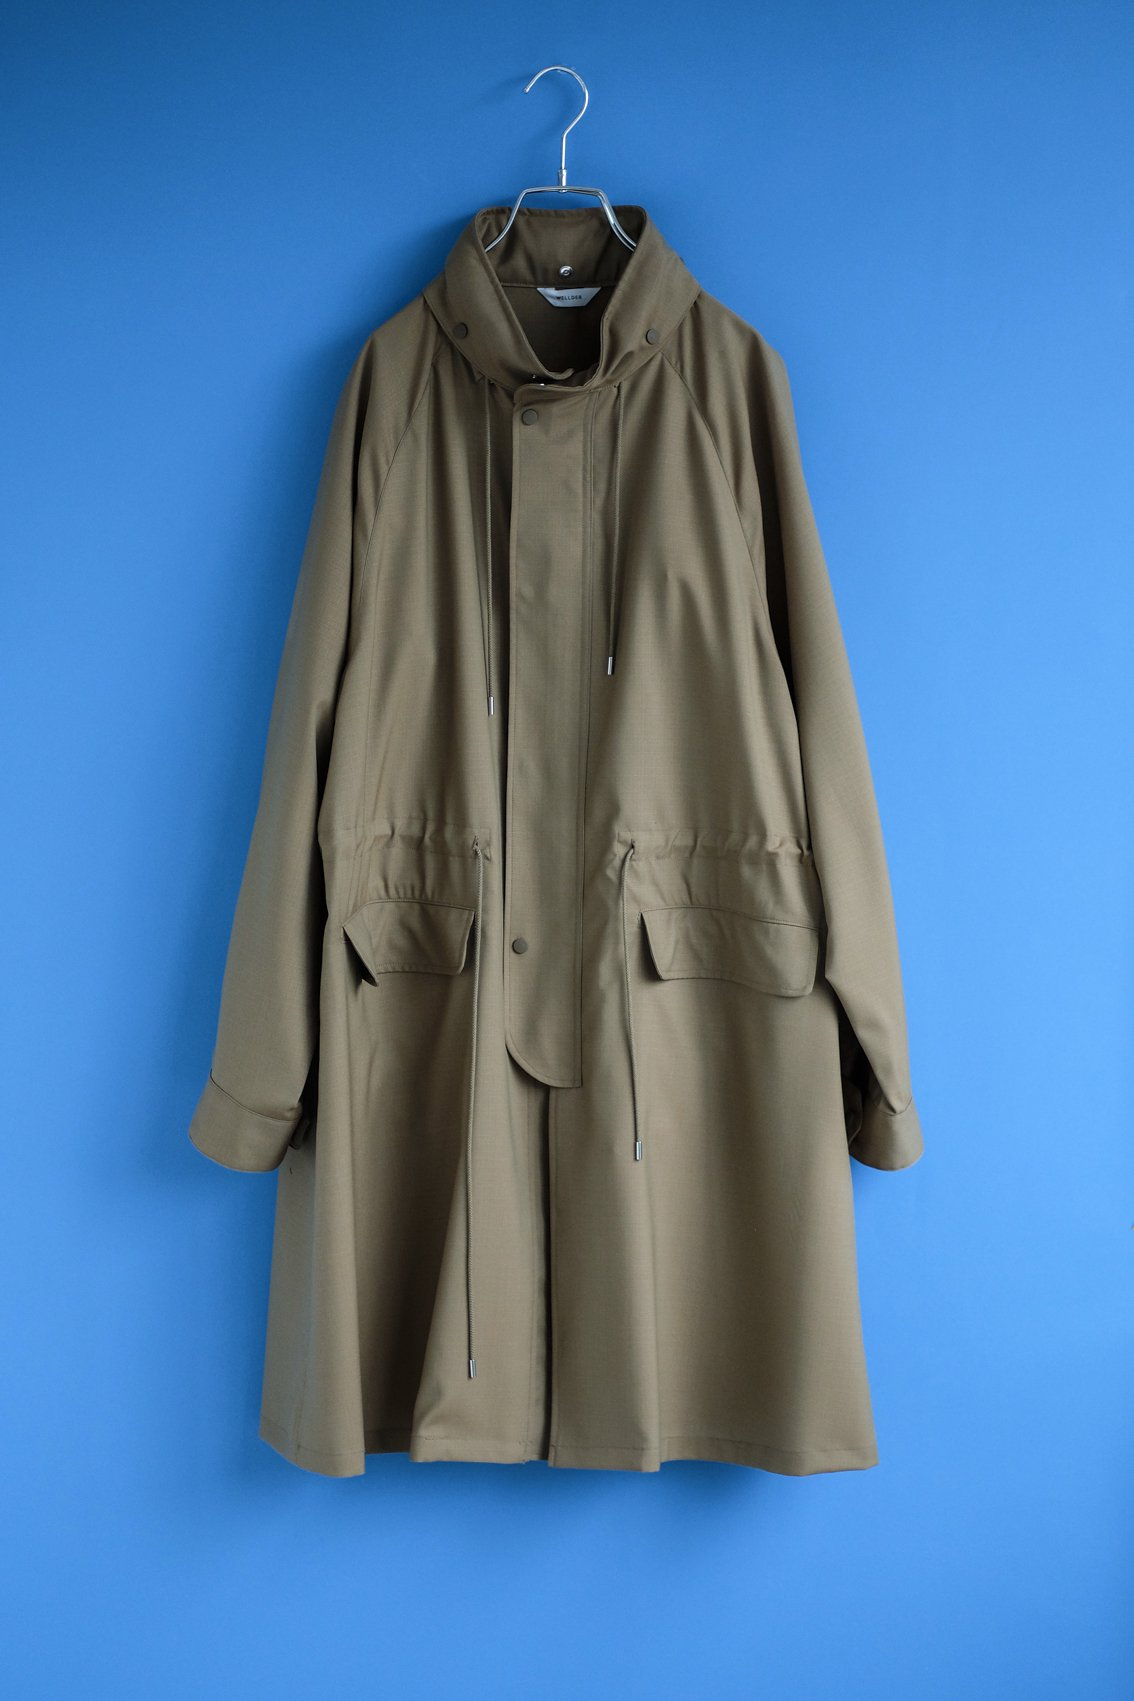 WELLDER / COMMANDER COAT